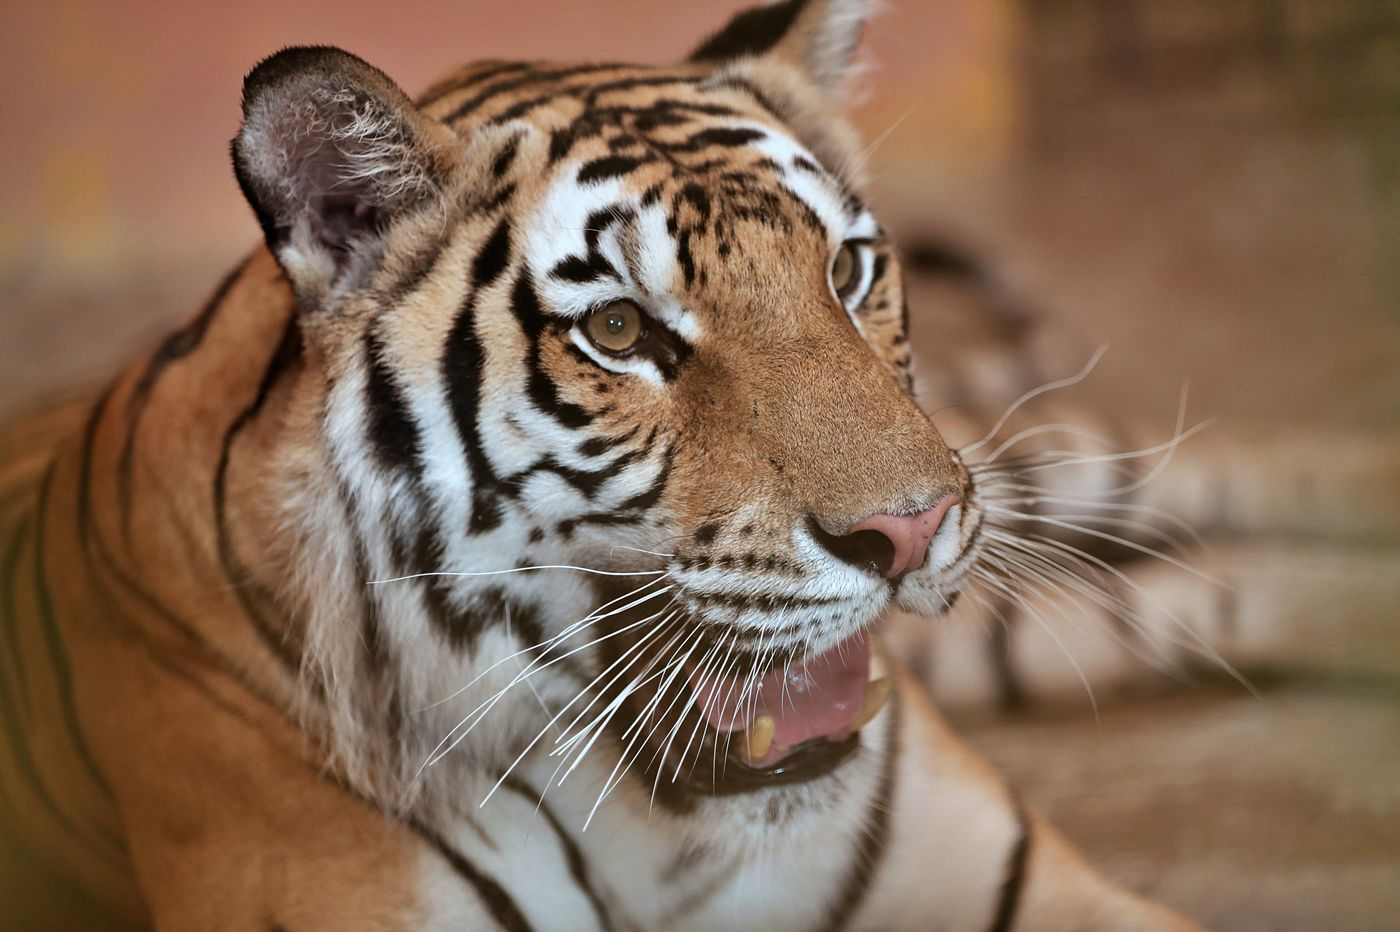 Feds charge N J  man with illegal purchase of $6,800 tiger-skin rug